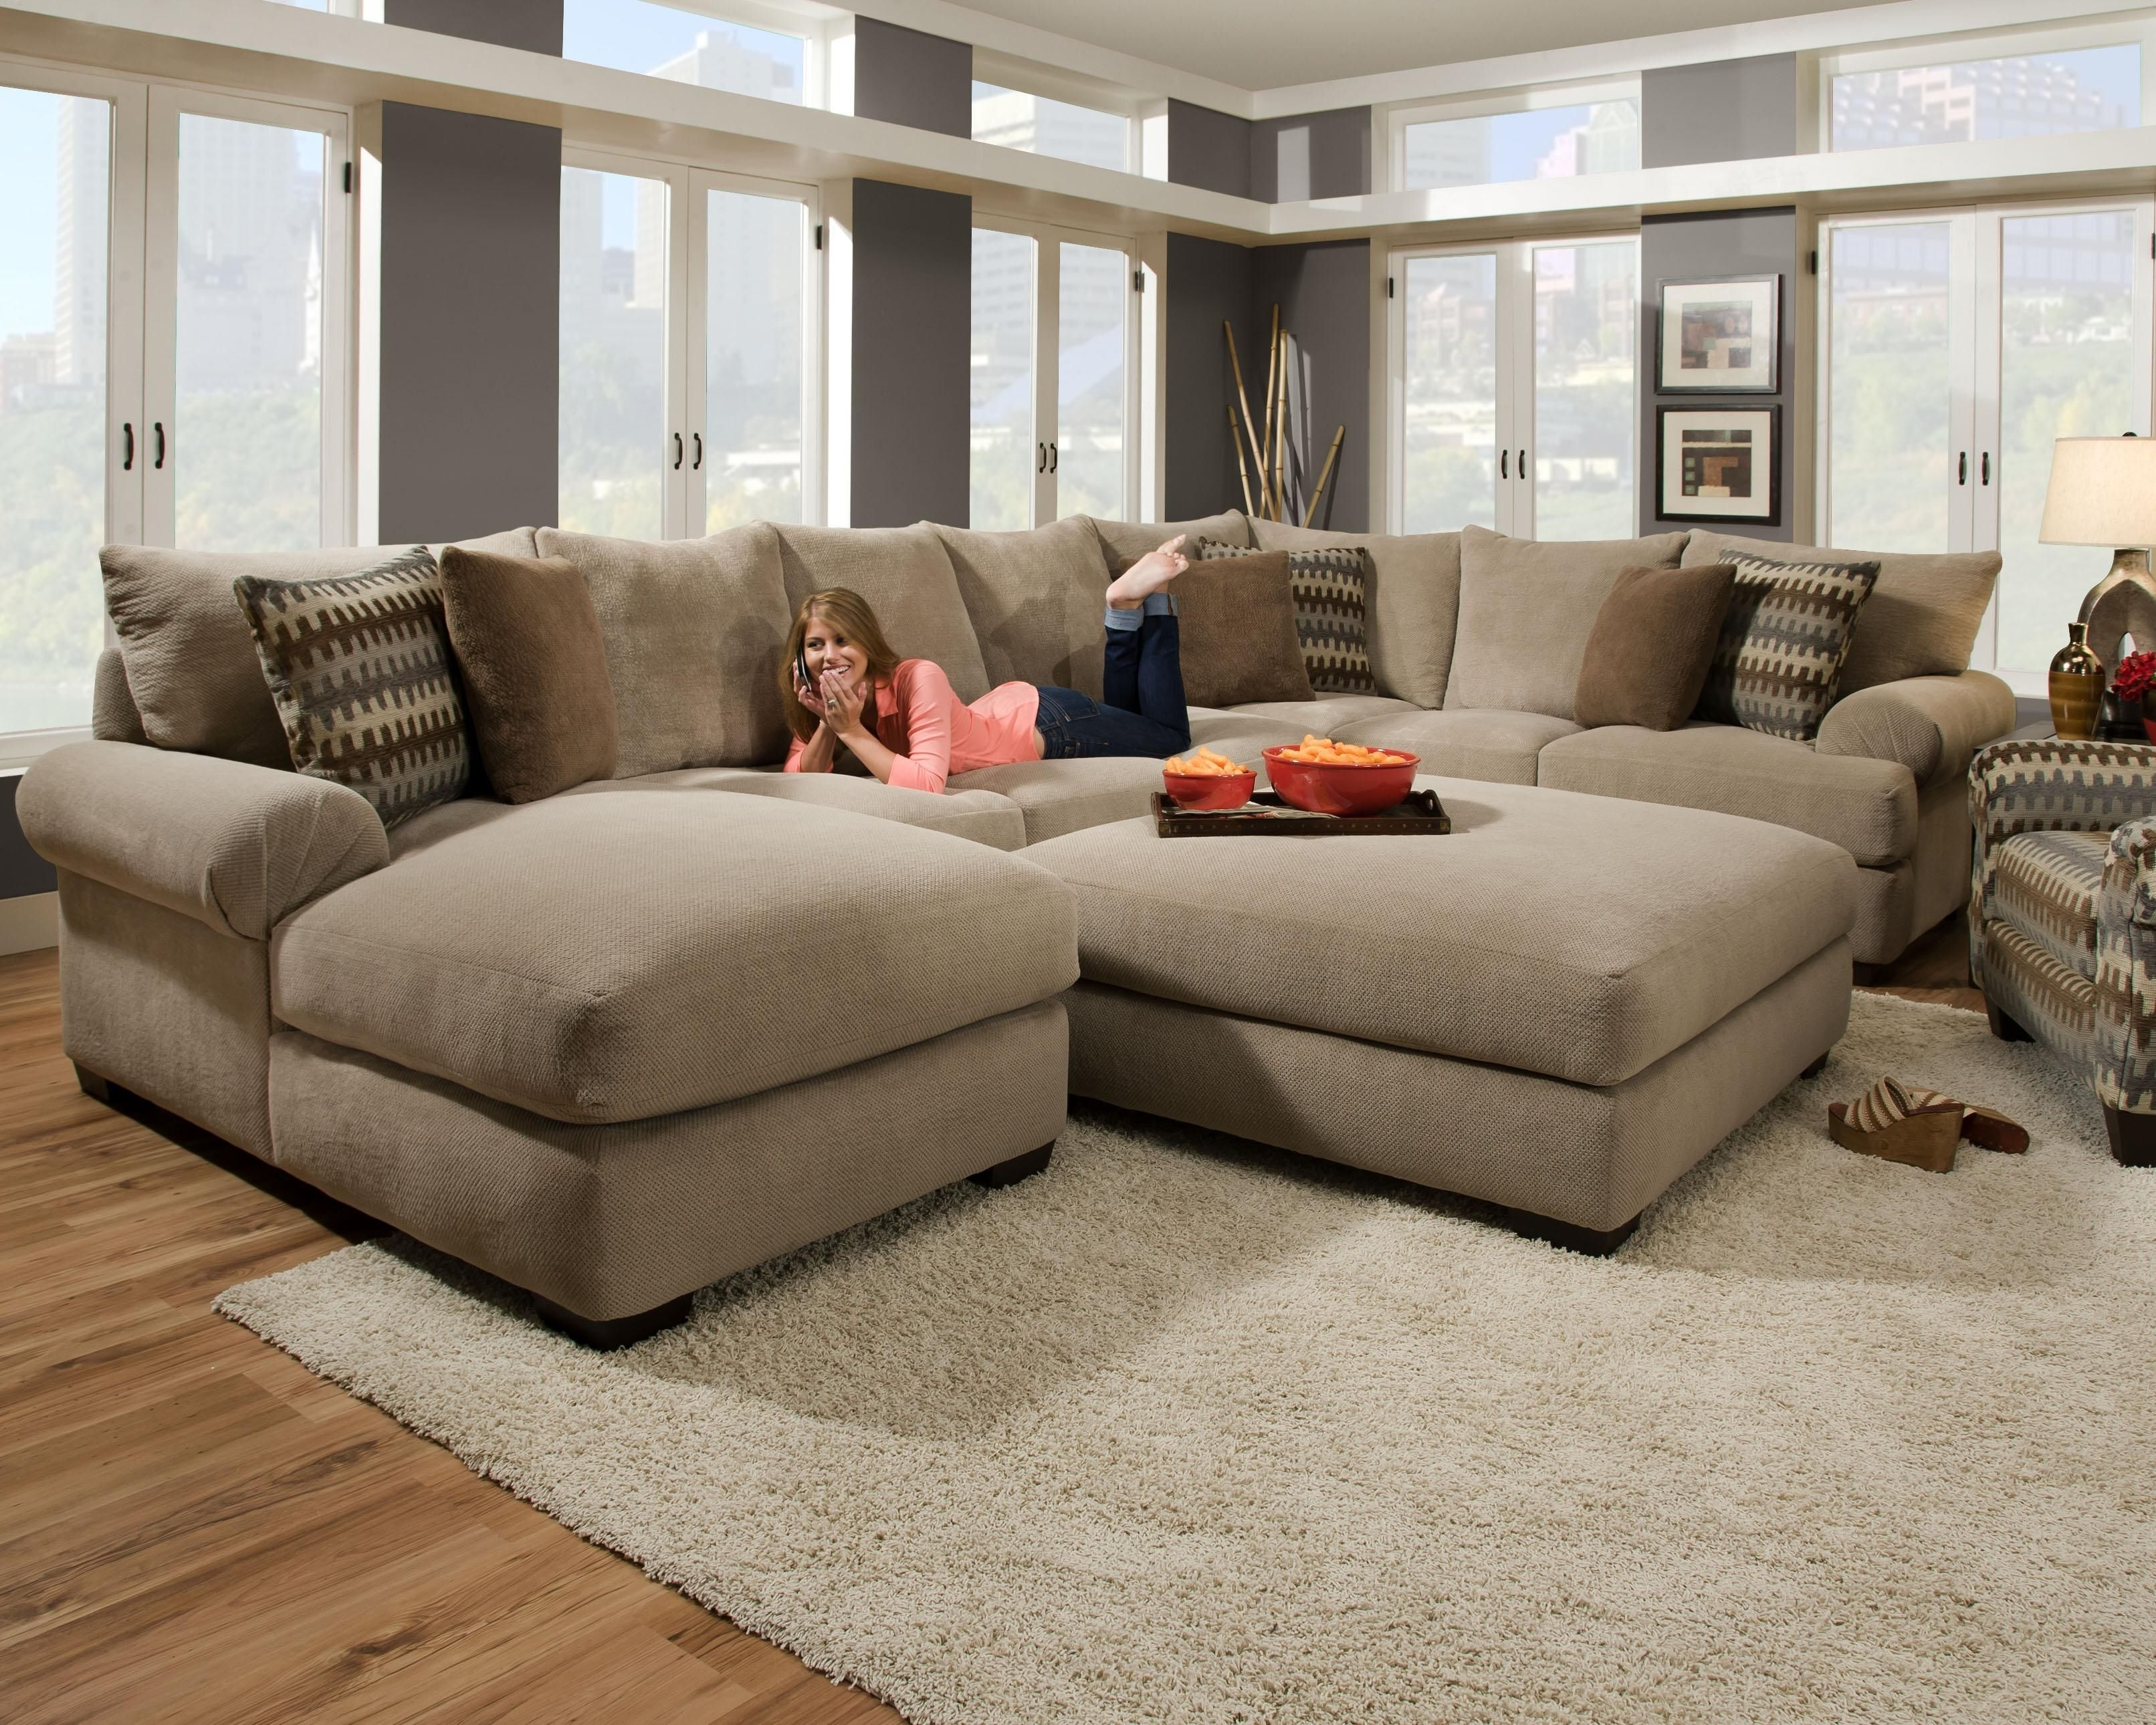 Fashionable Sectionals With Oversized Ottoman Intended For Furniture Design Idea For Living Room And Oversized U Shaped (View 4 of 15)